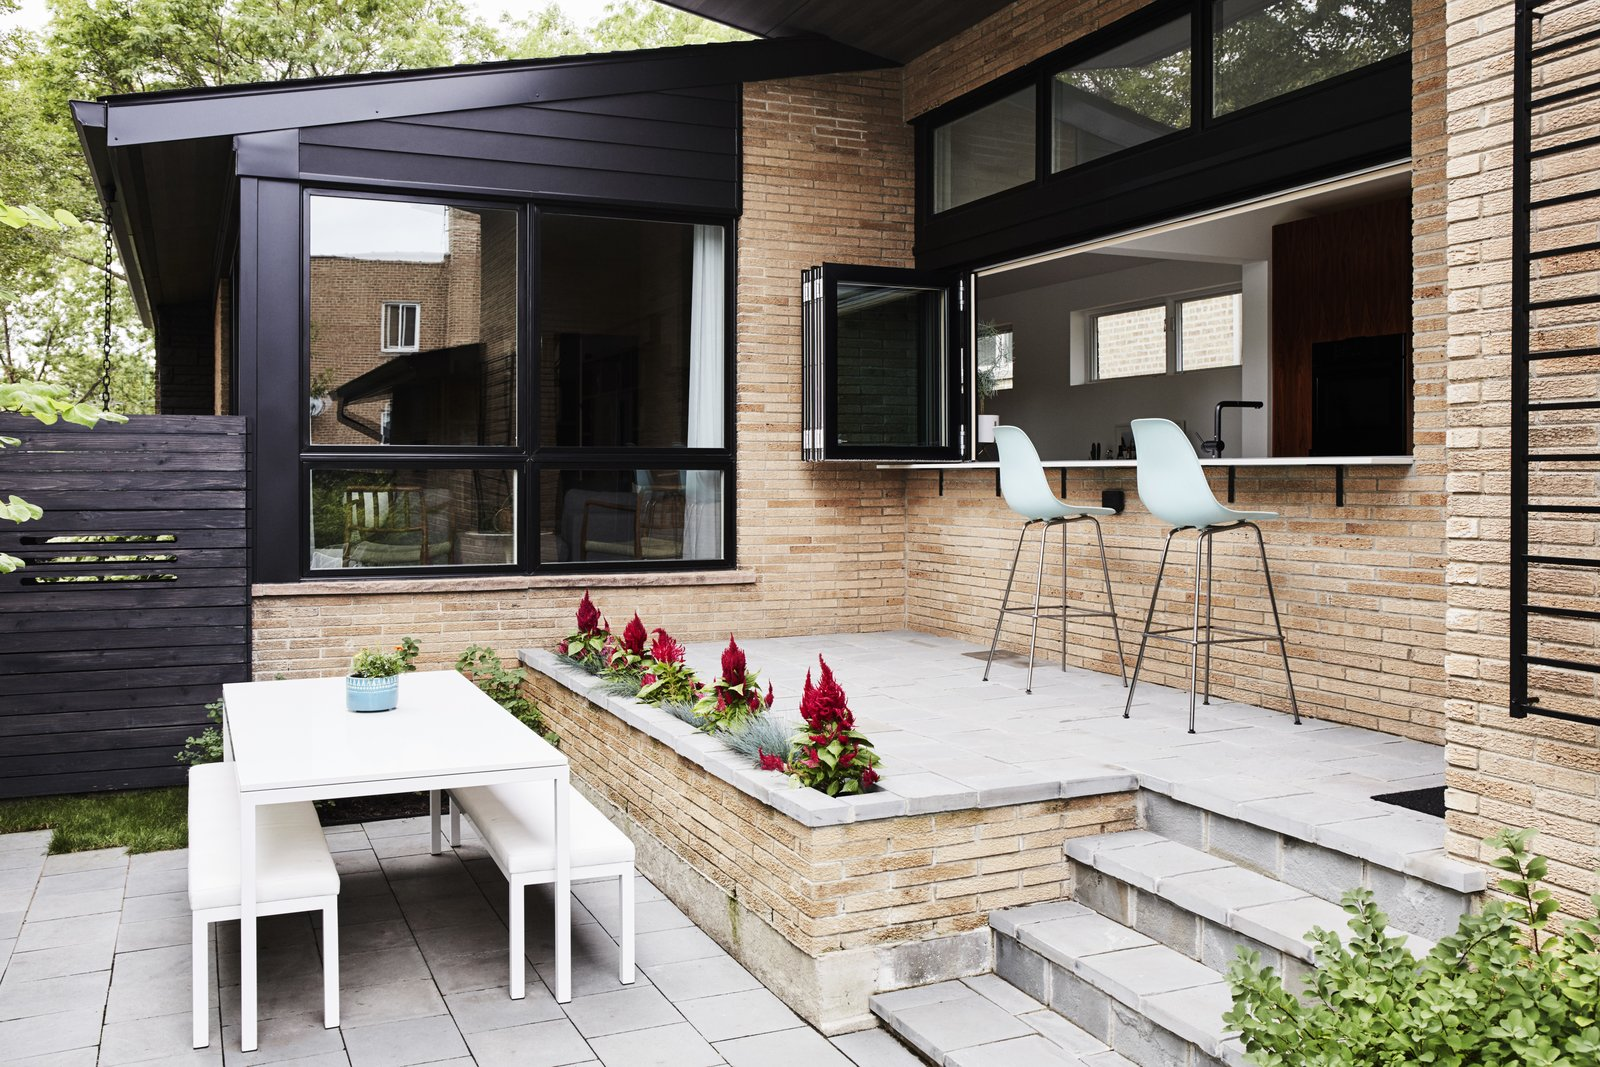 In the front courtyard, a raised bluestone patio was built off the new kitchen for casual meals and entertaining. The Eames Molded Plastic Chairs are from Herman Miller. The dining table and benches are from Room & Board.